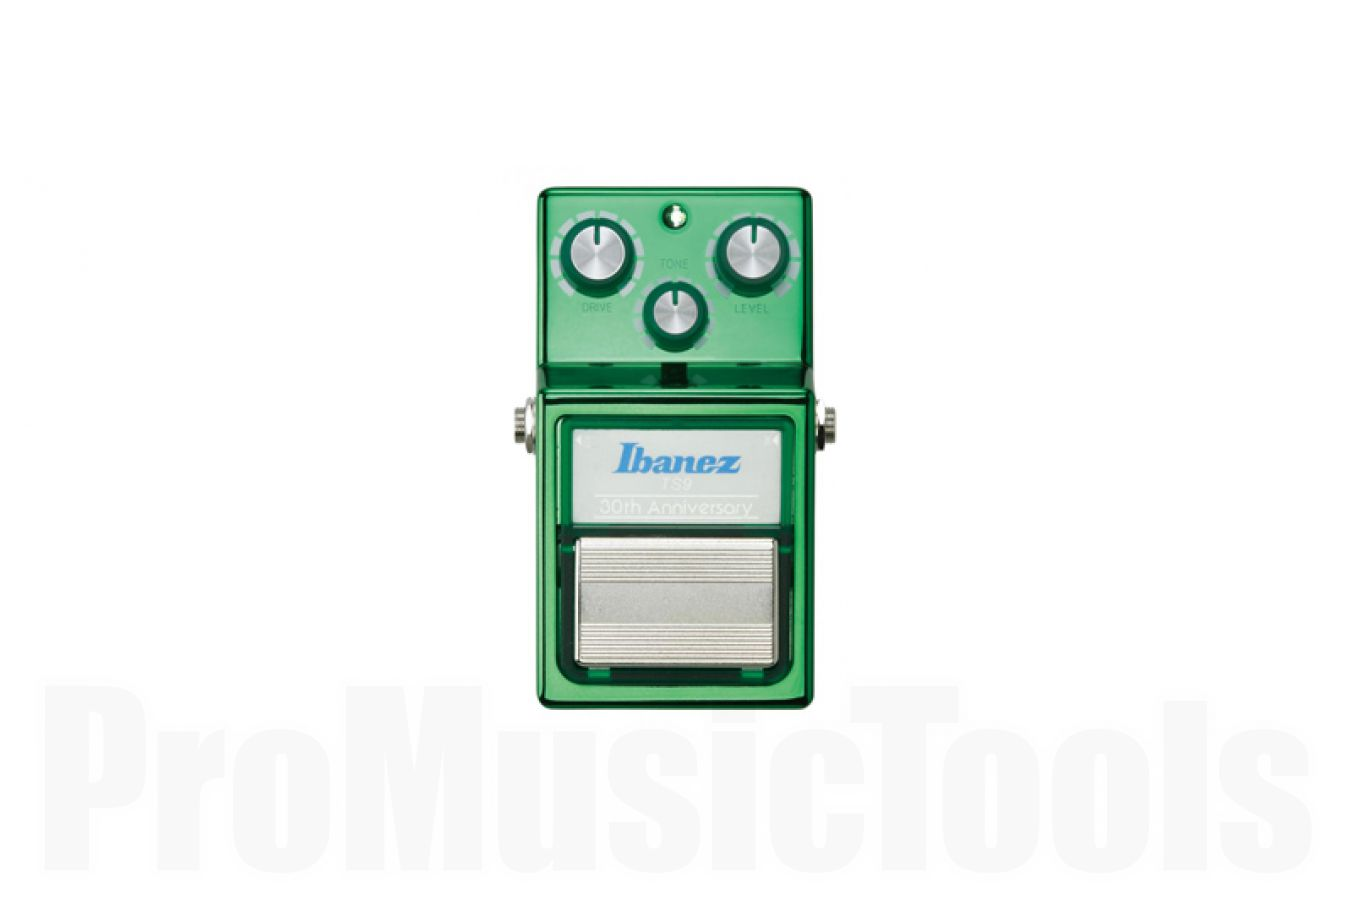 Ibanez TS930TH 30th Anniversary Tube Screamer